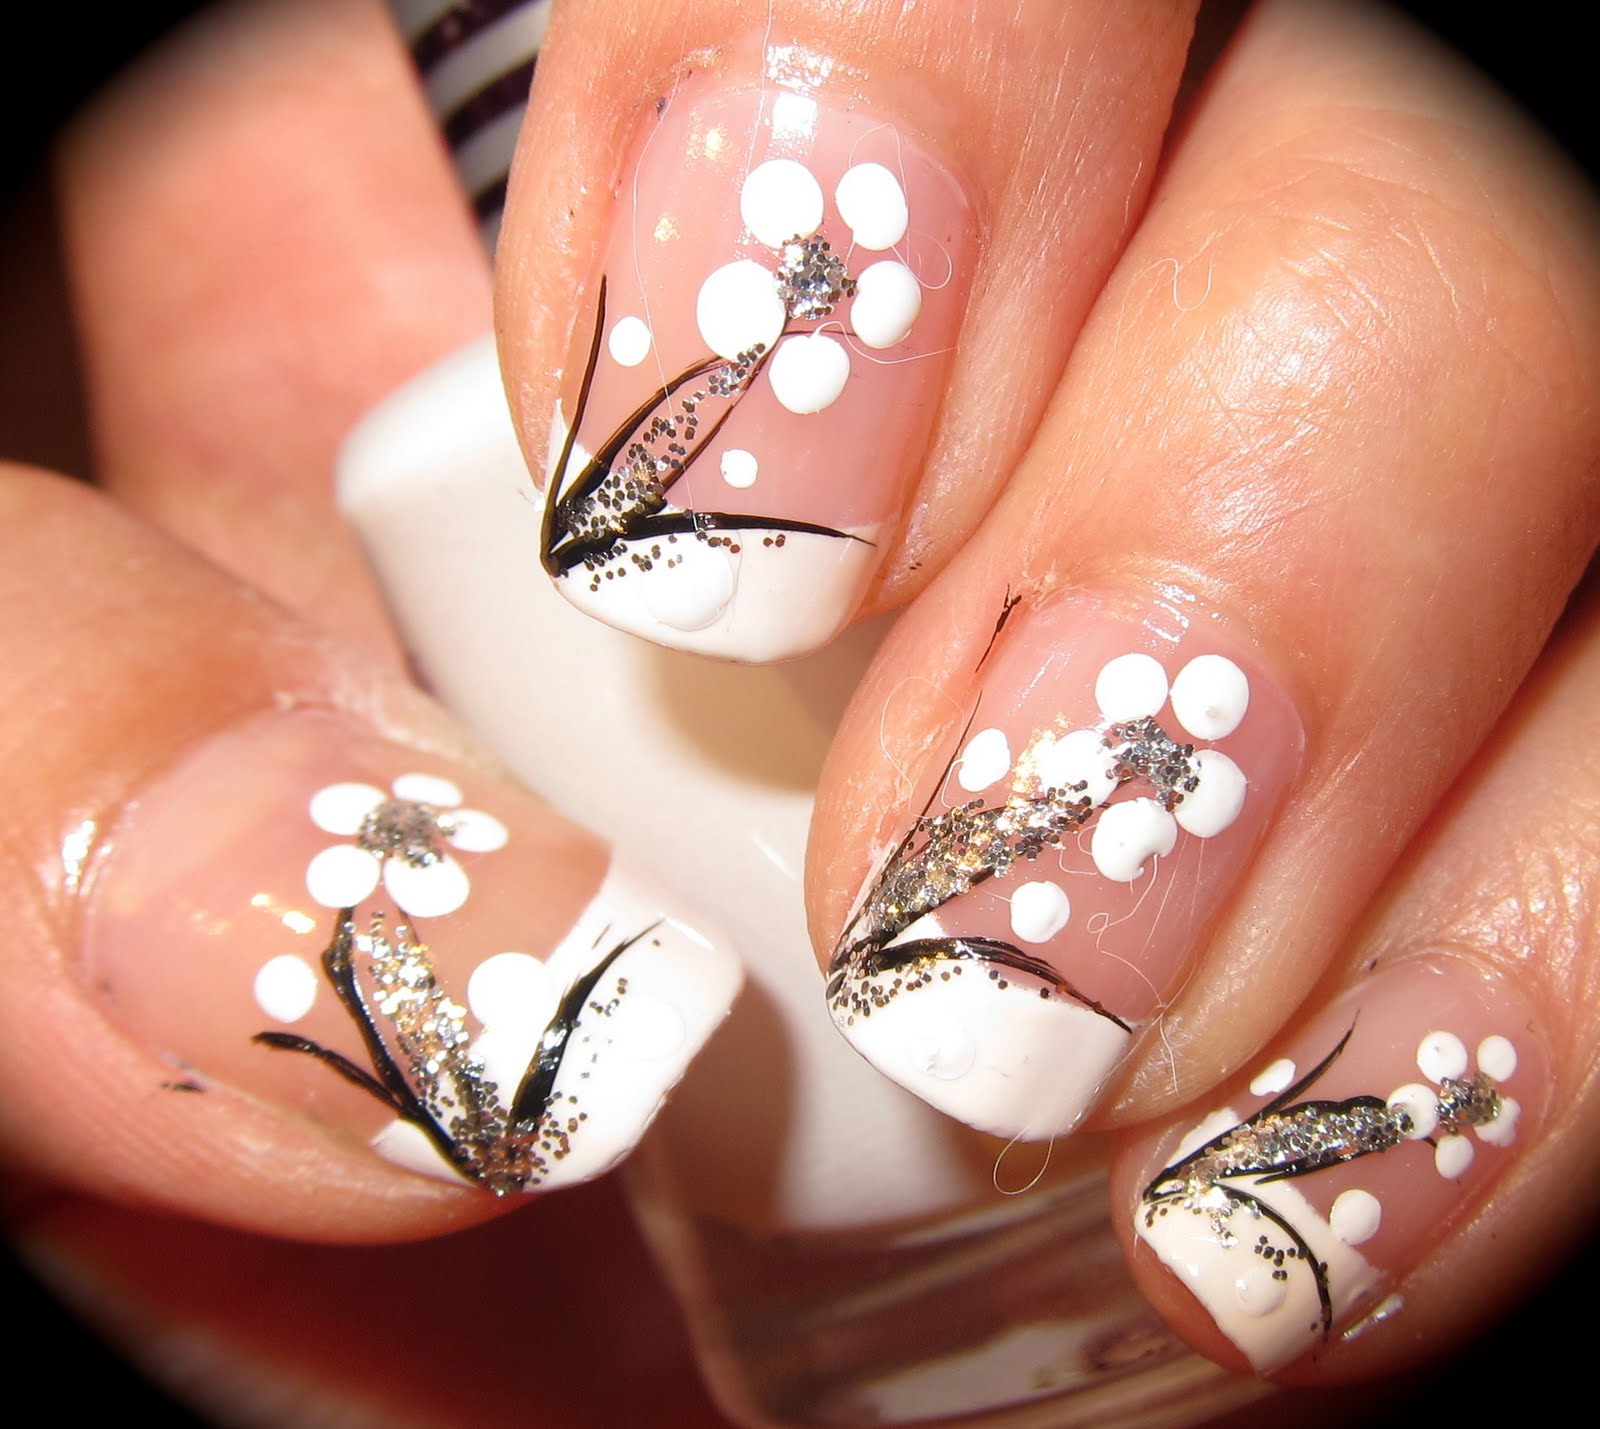 anny-simplichic: Black and White Floral Nail Design